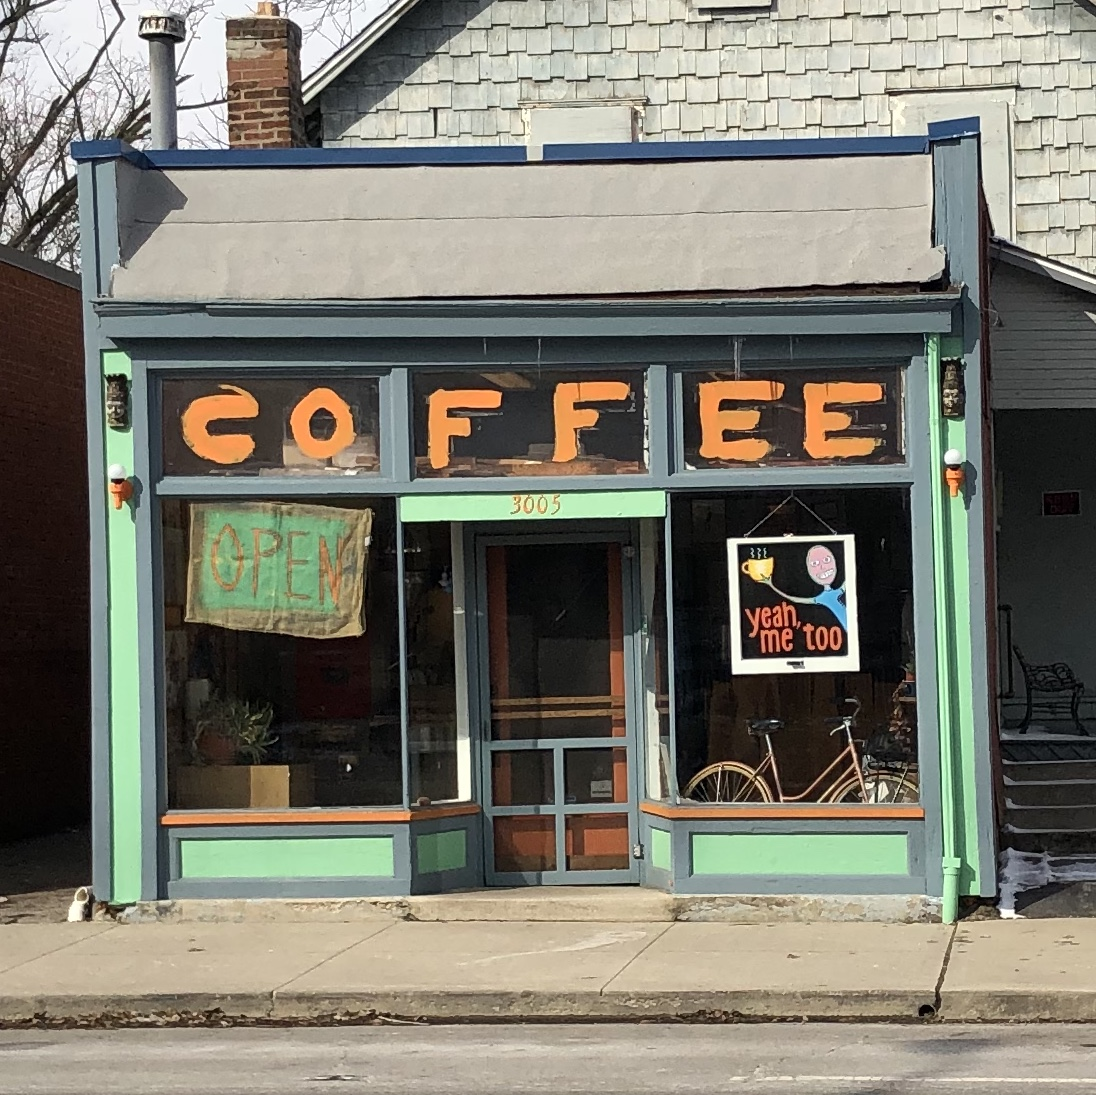 World's best coffee shop.